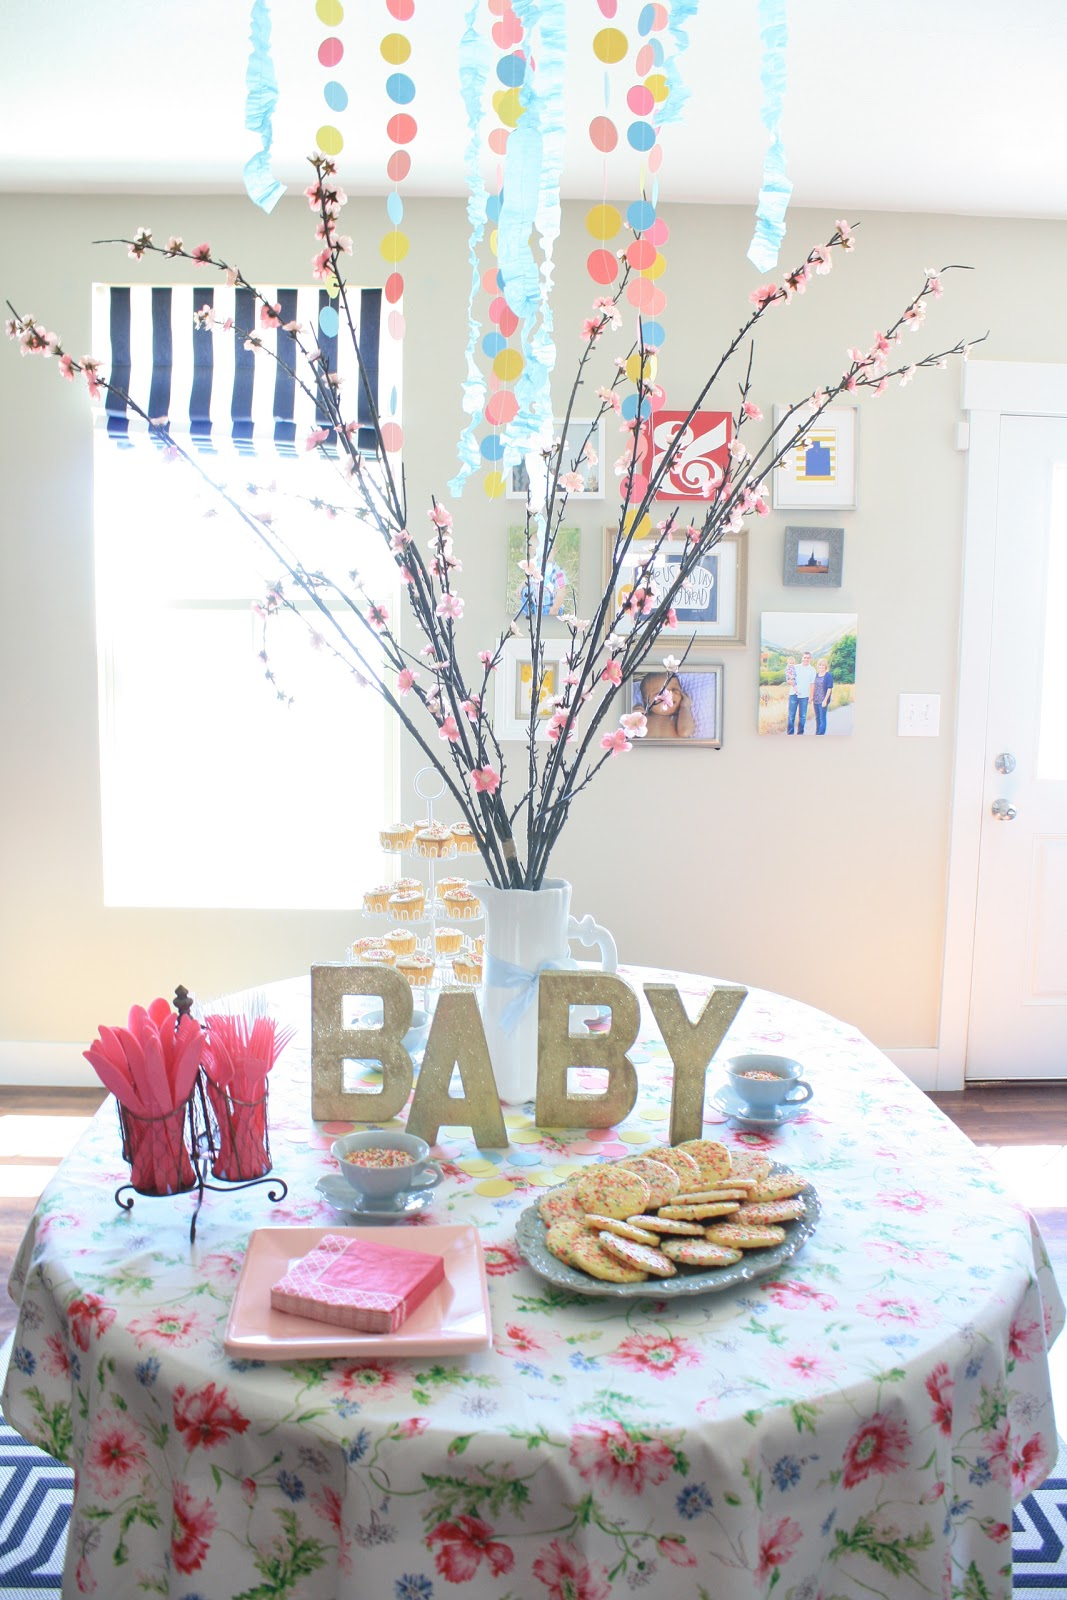 Home design ide sprinkles baby shower for Baby shower ceiling decoration ideas